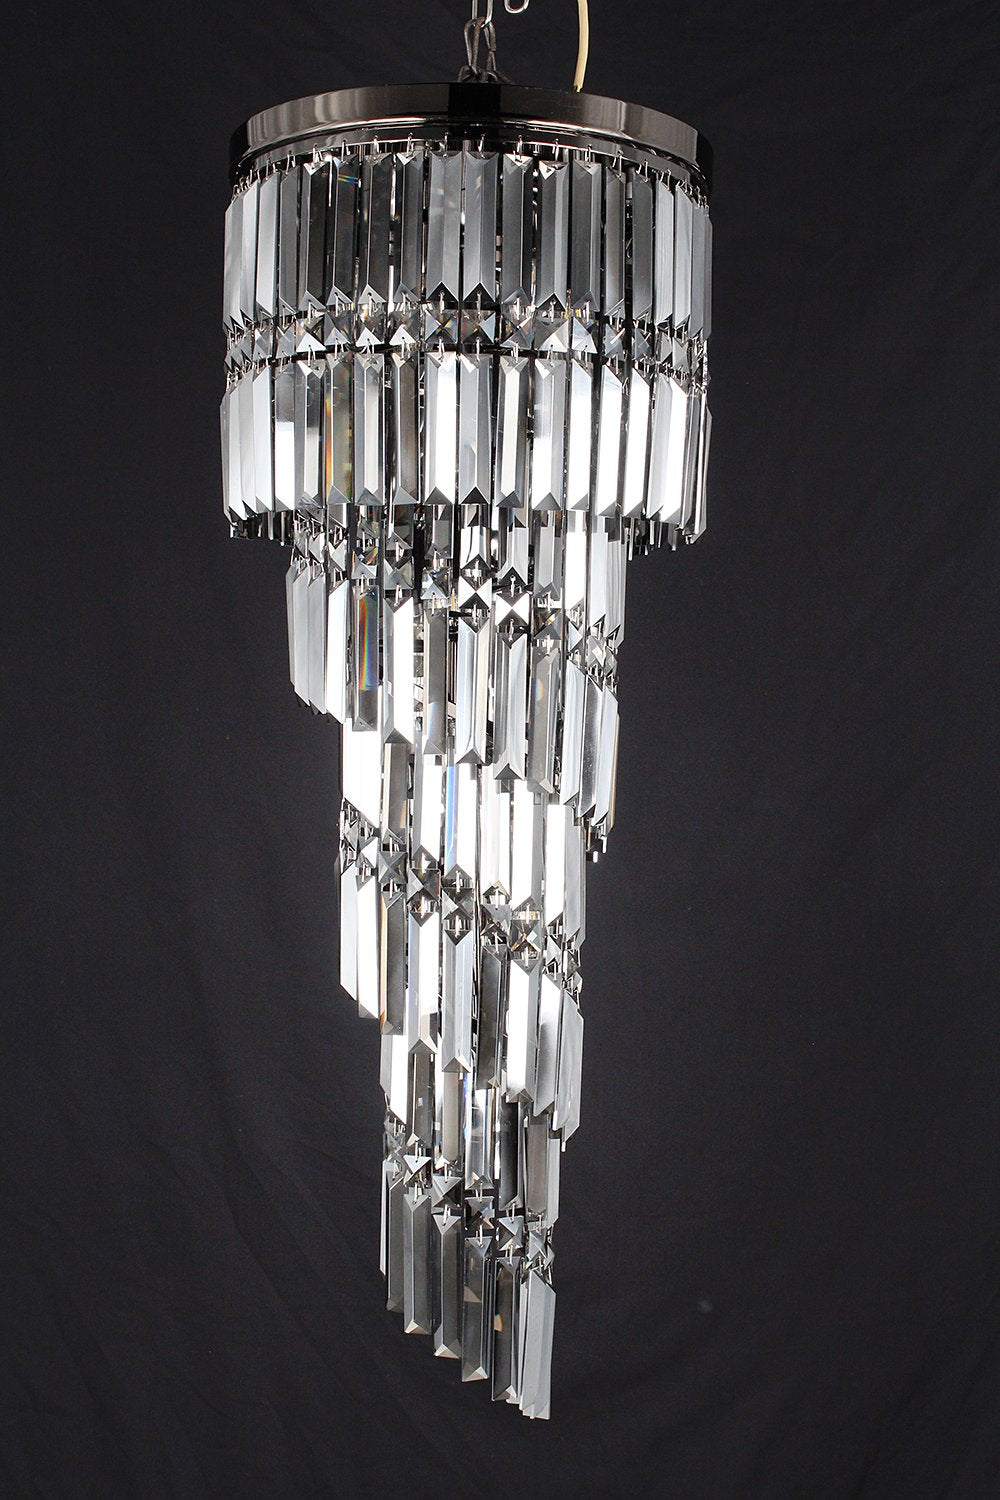 Finchley 9 Light Spiral Polished Chrome Chandelier With Smoked Gun Metal Crystal - ID 8125